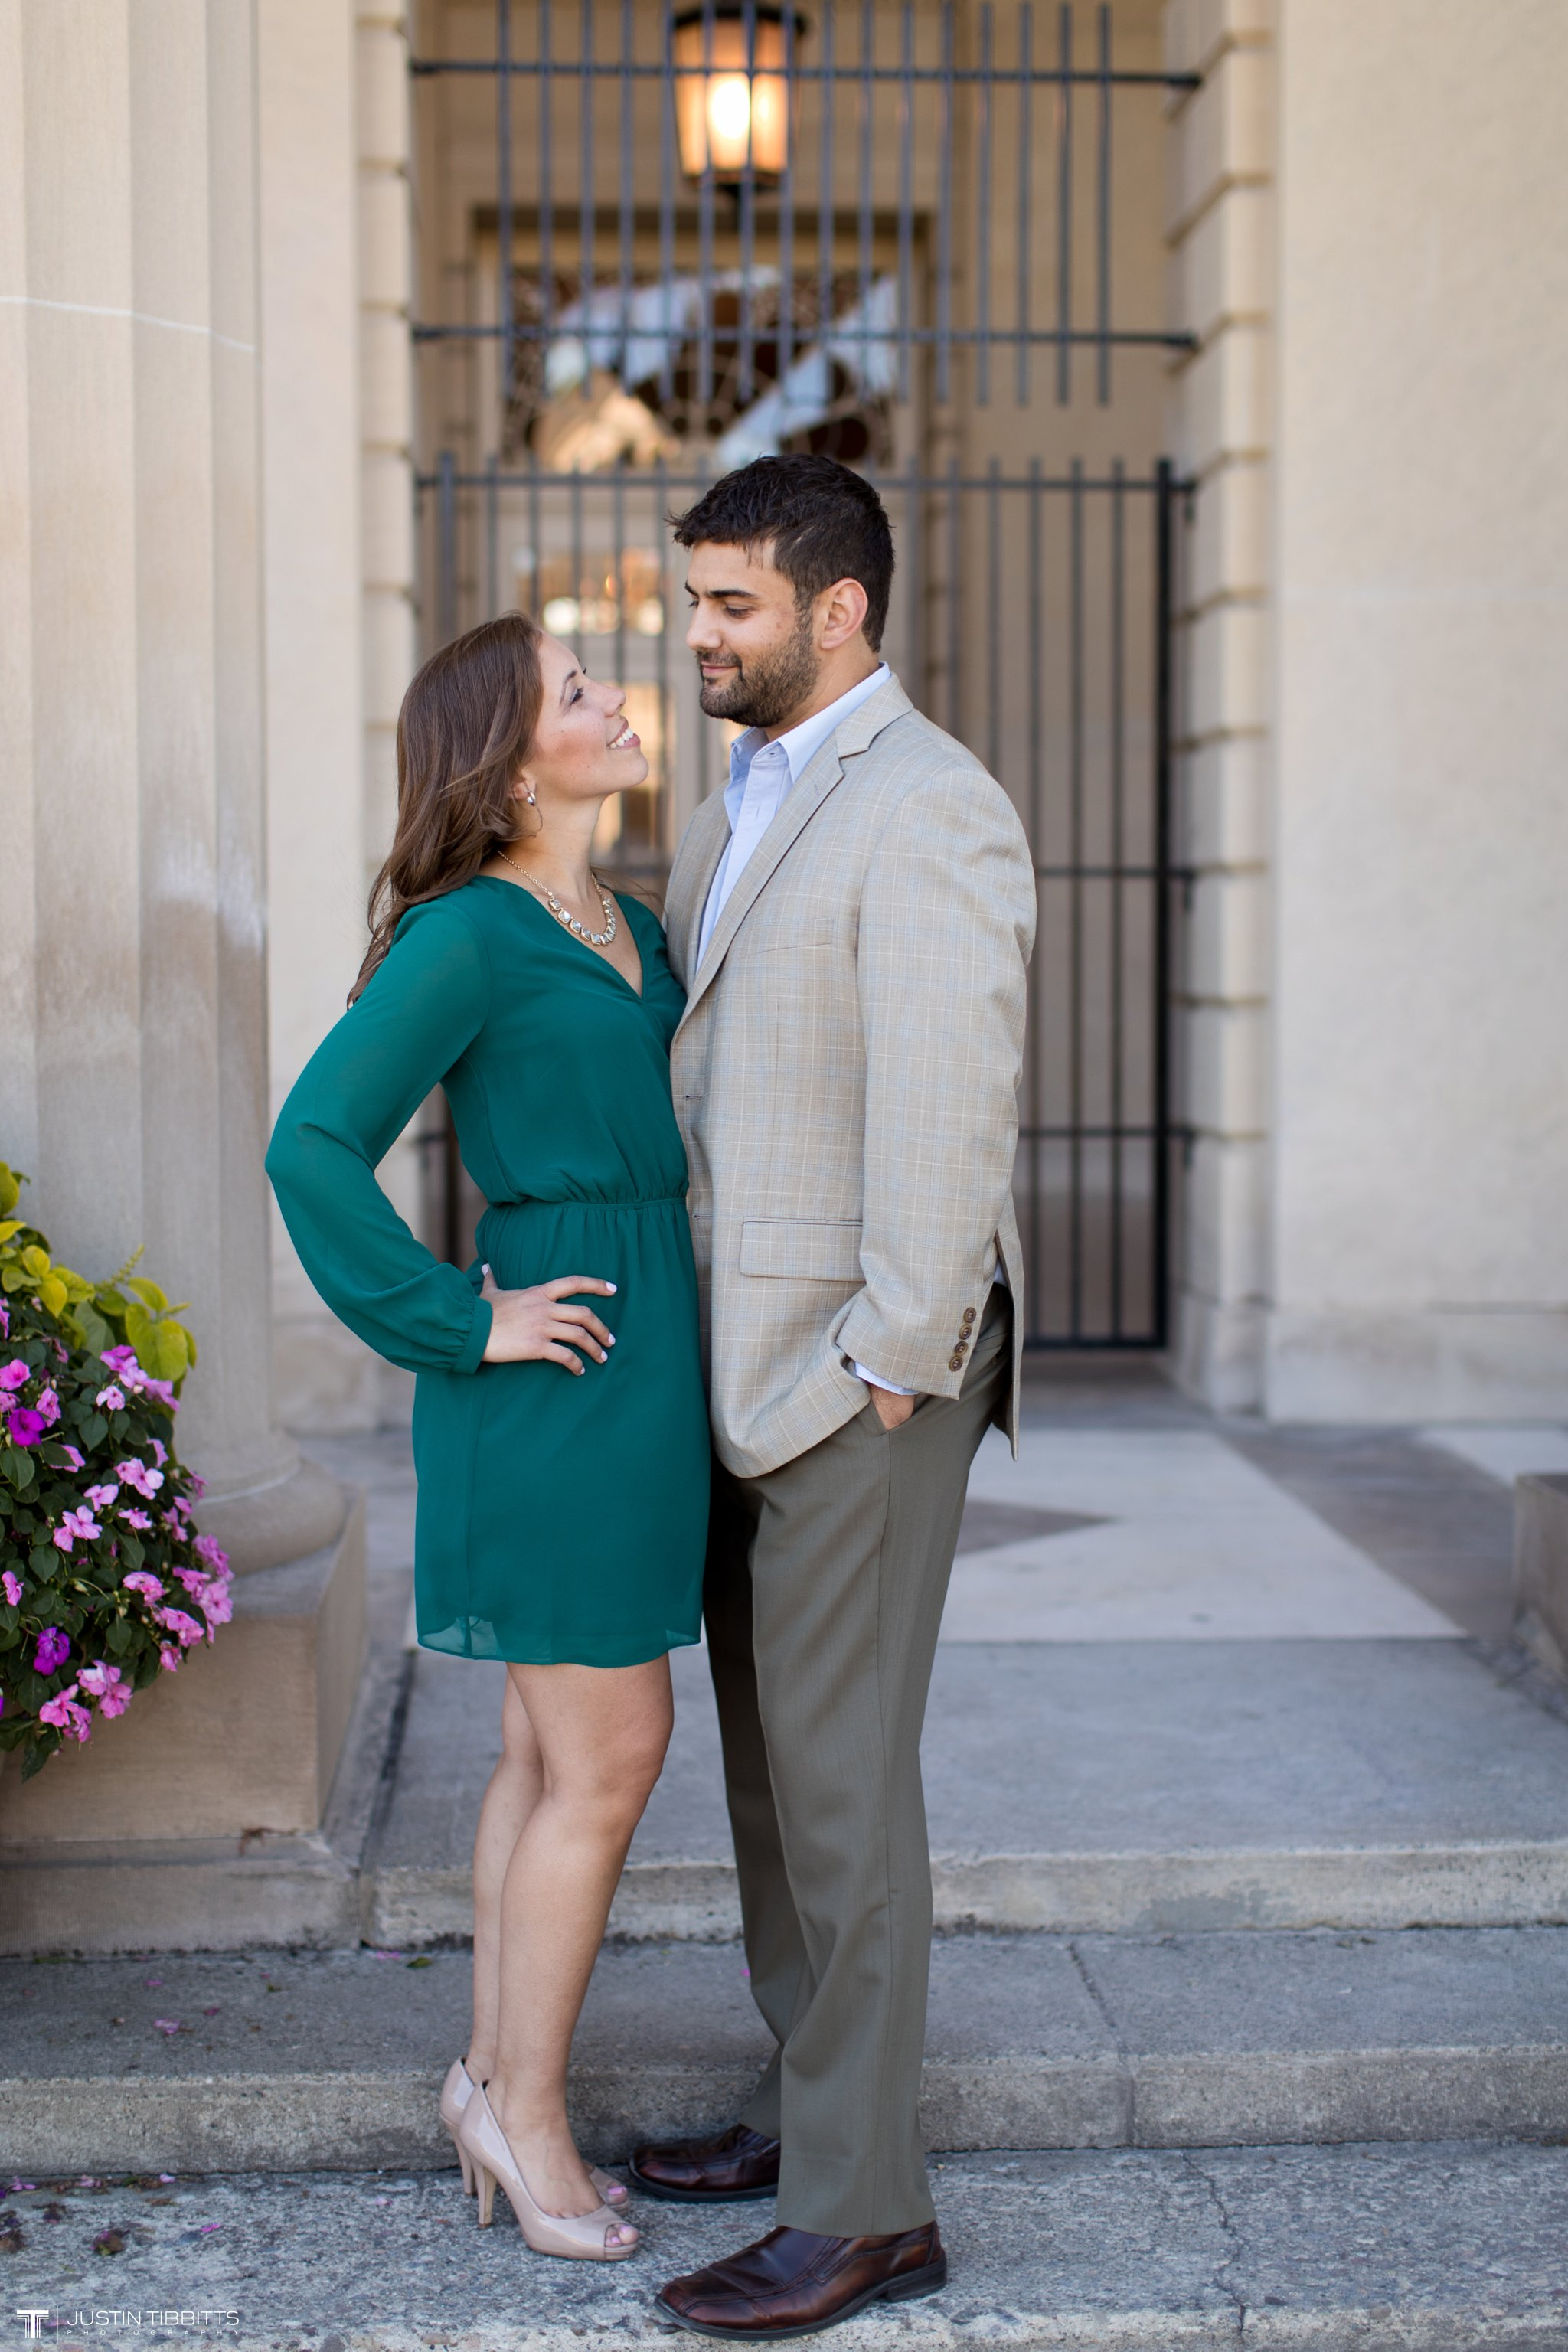 saratoga-springs-ny-engagement-shoot-with-nick-and-ciara_0004